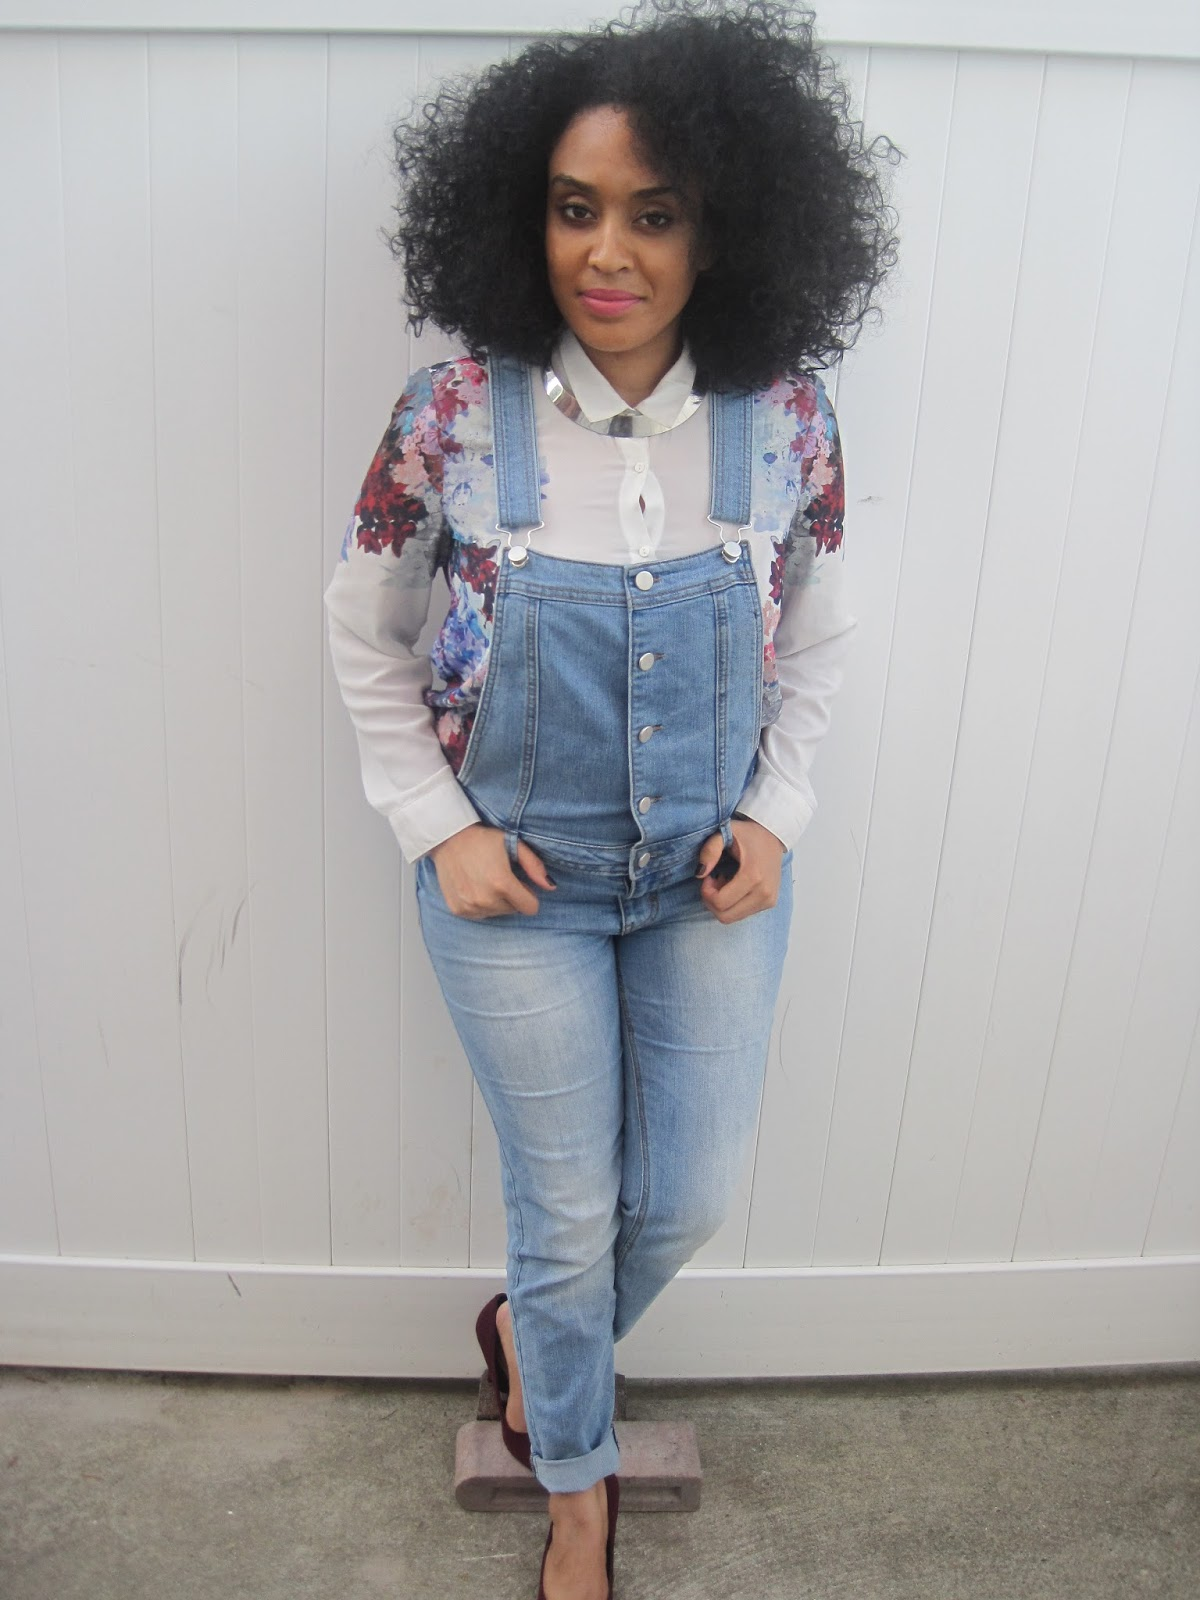 The Real Darling Nikki: How to Dress Up Overalls for Fall